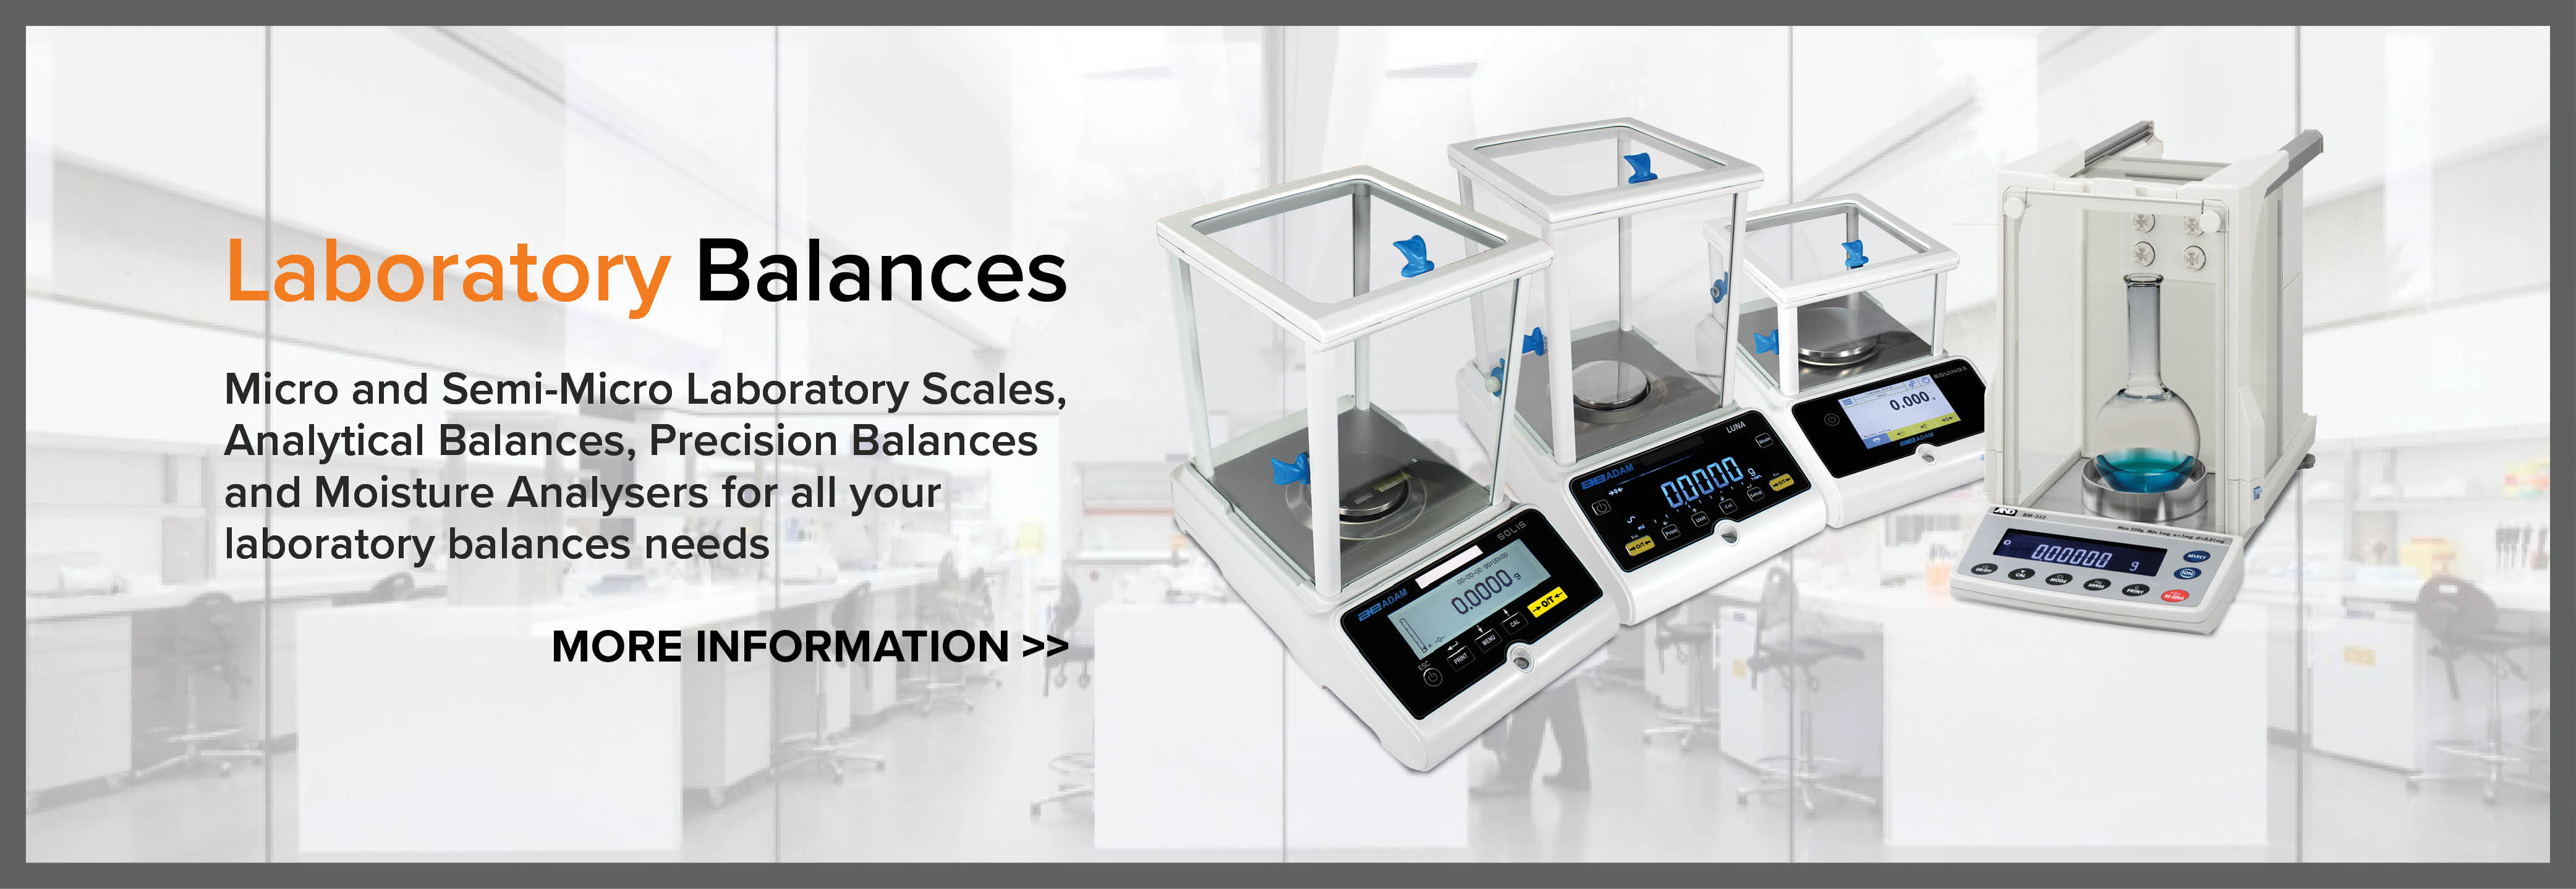 Laboratory Balances - Micro and Semi-Micro, Analytical, and Precision Balances and Moisture Analysers